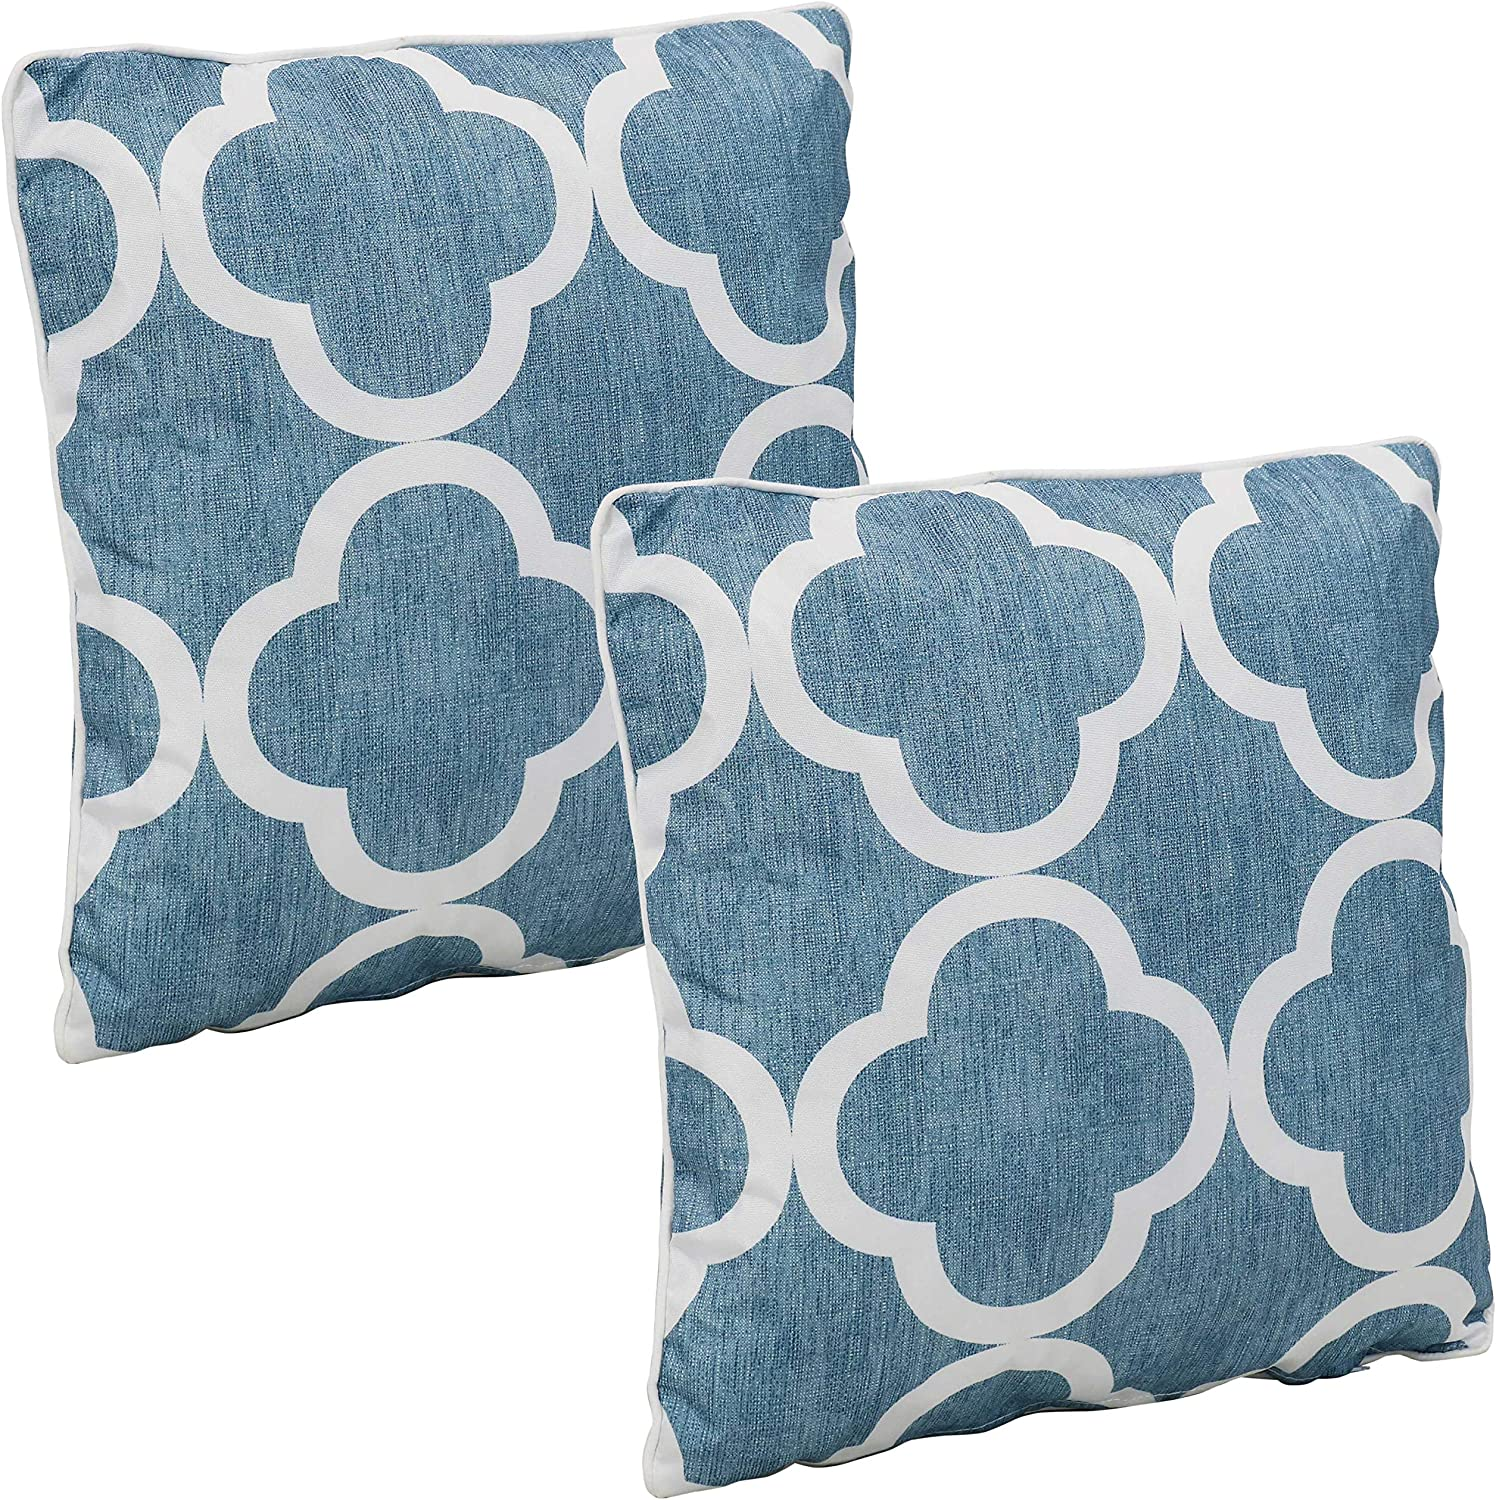 Sunnydaze Set of 2 Indoor/Outdoor Decorative Throw Pillows - 16-Inch Square Accent Toss Pillows for Patio Furniture - Pillow Set for Outside Bench, Chair and Loveseat - Blue and White Quatrefoil